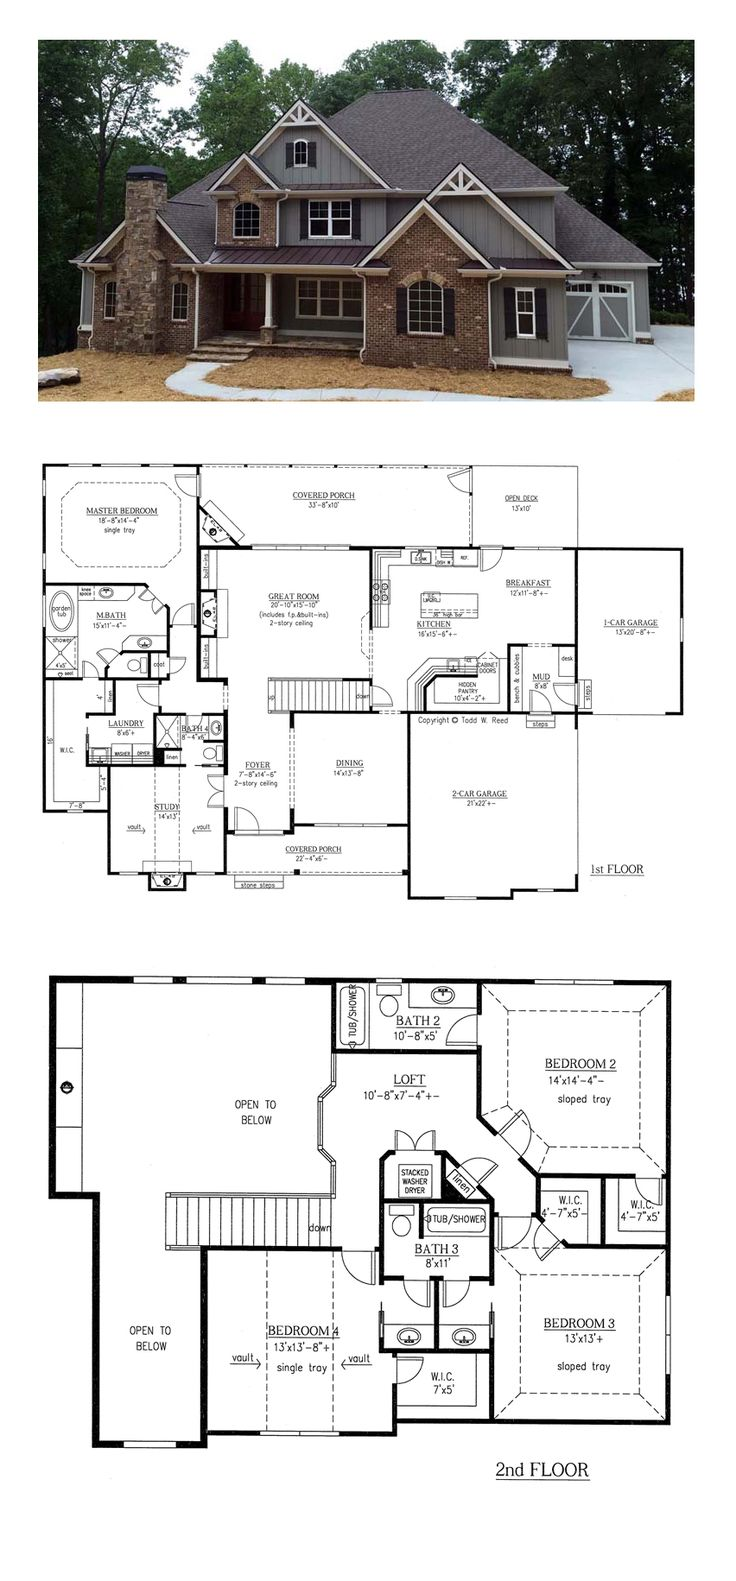 Best 25 dream house plans ideas on pinterest house floor plans home plans and house blueprints - Best house plans for a family of four ...